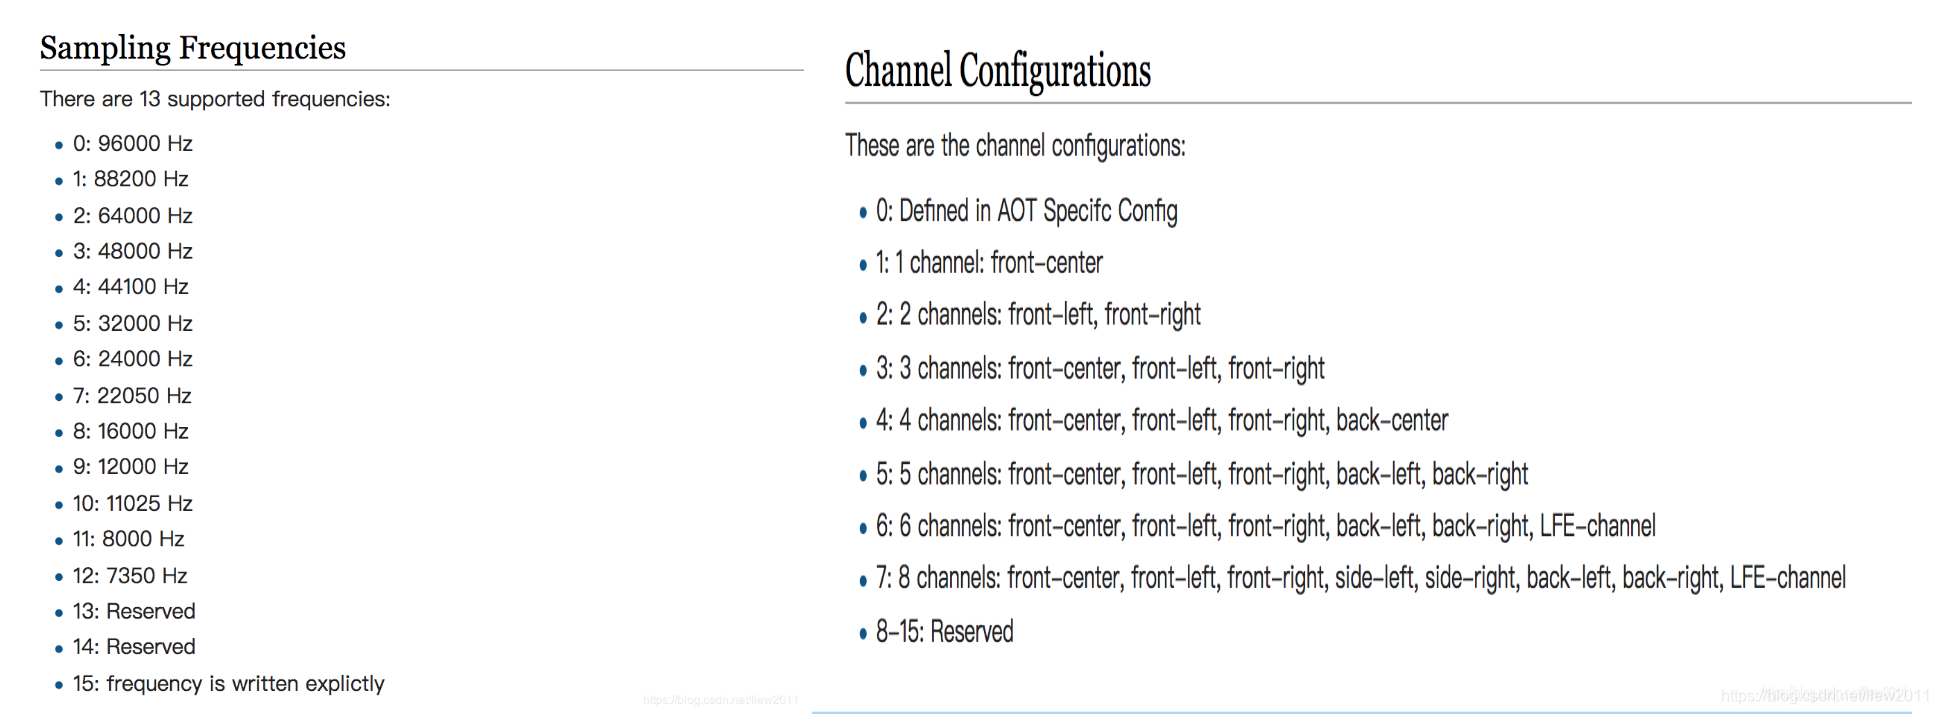 Saimpling Frequencies and Channel Configurations